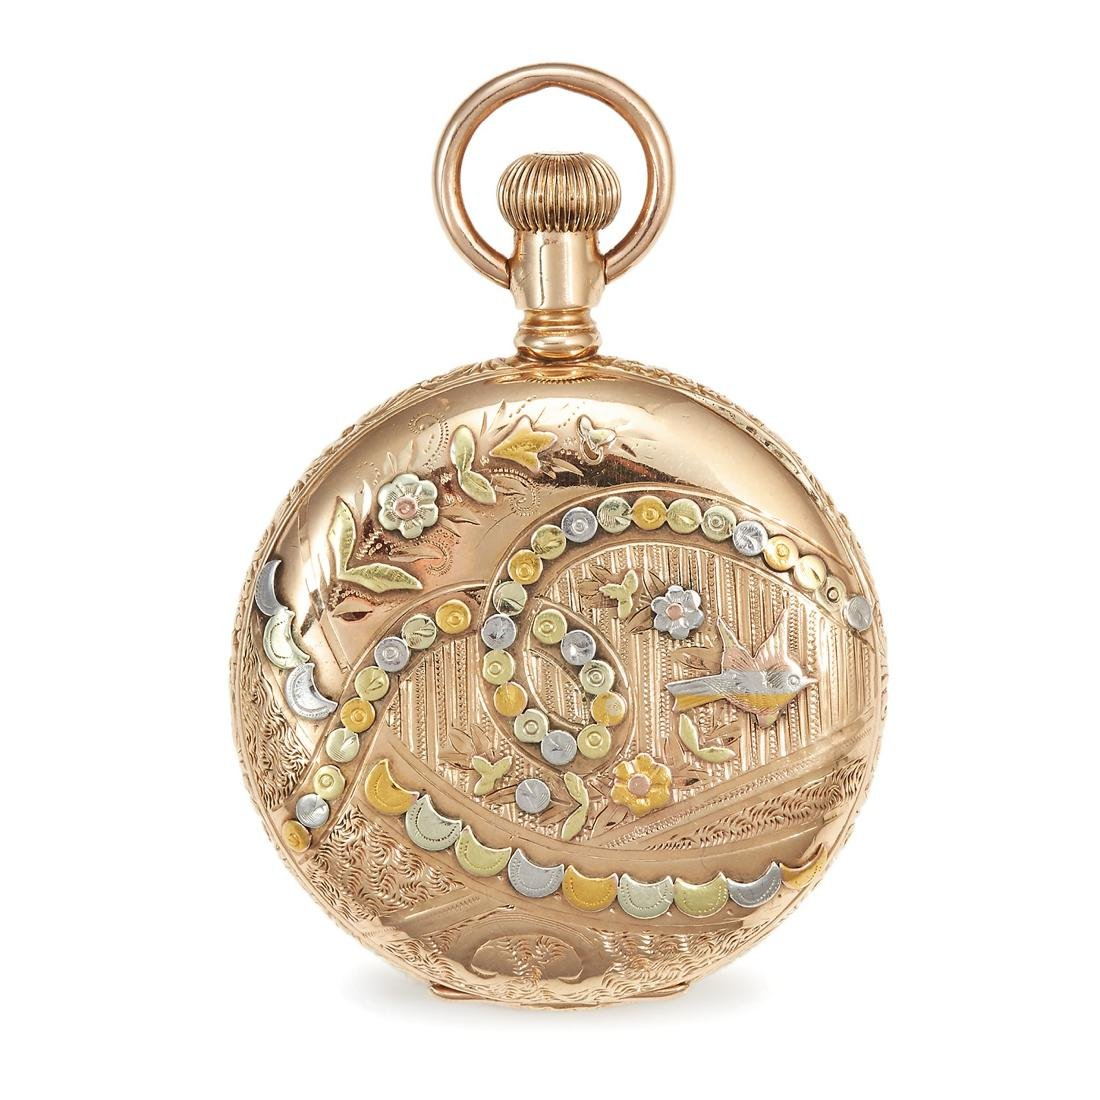 AN ANTIQUE POCKET WATCH, WALTHAM in 14ct gold, the